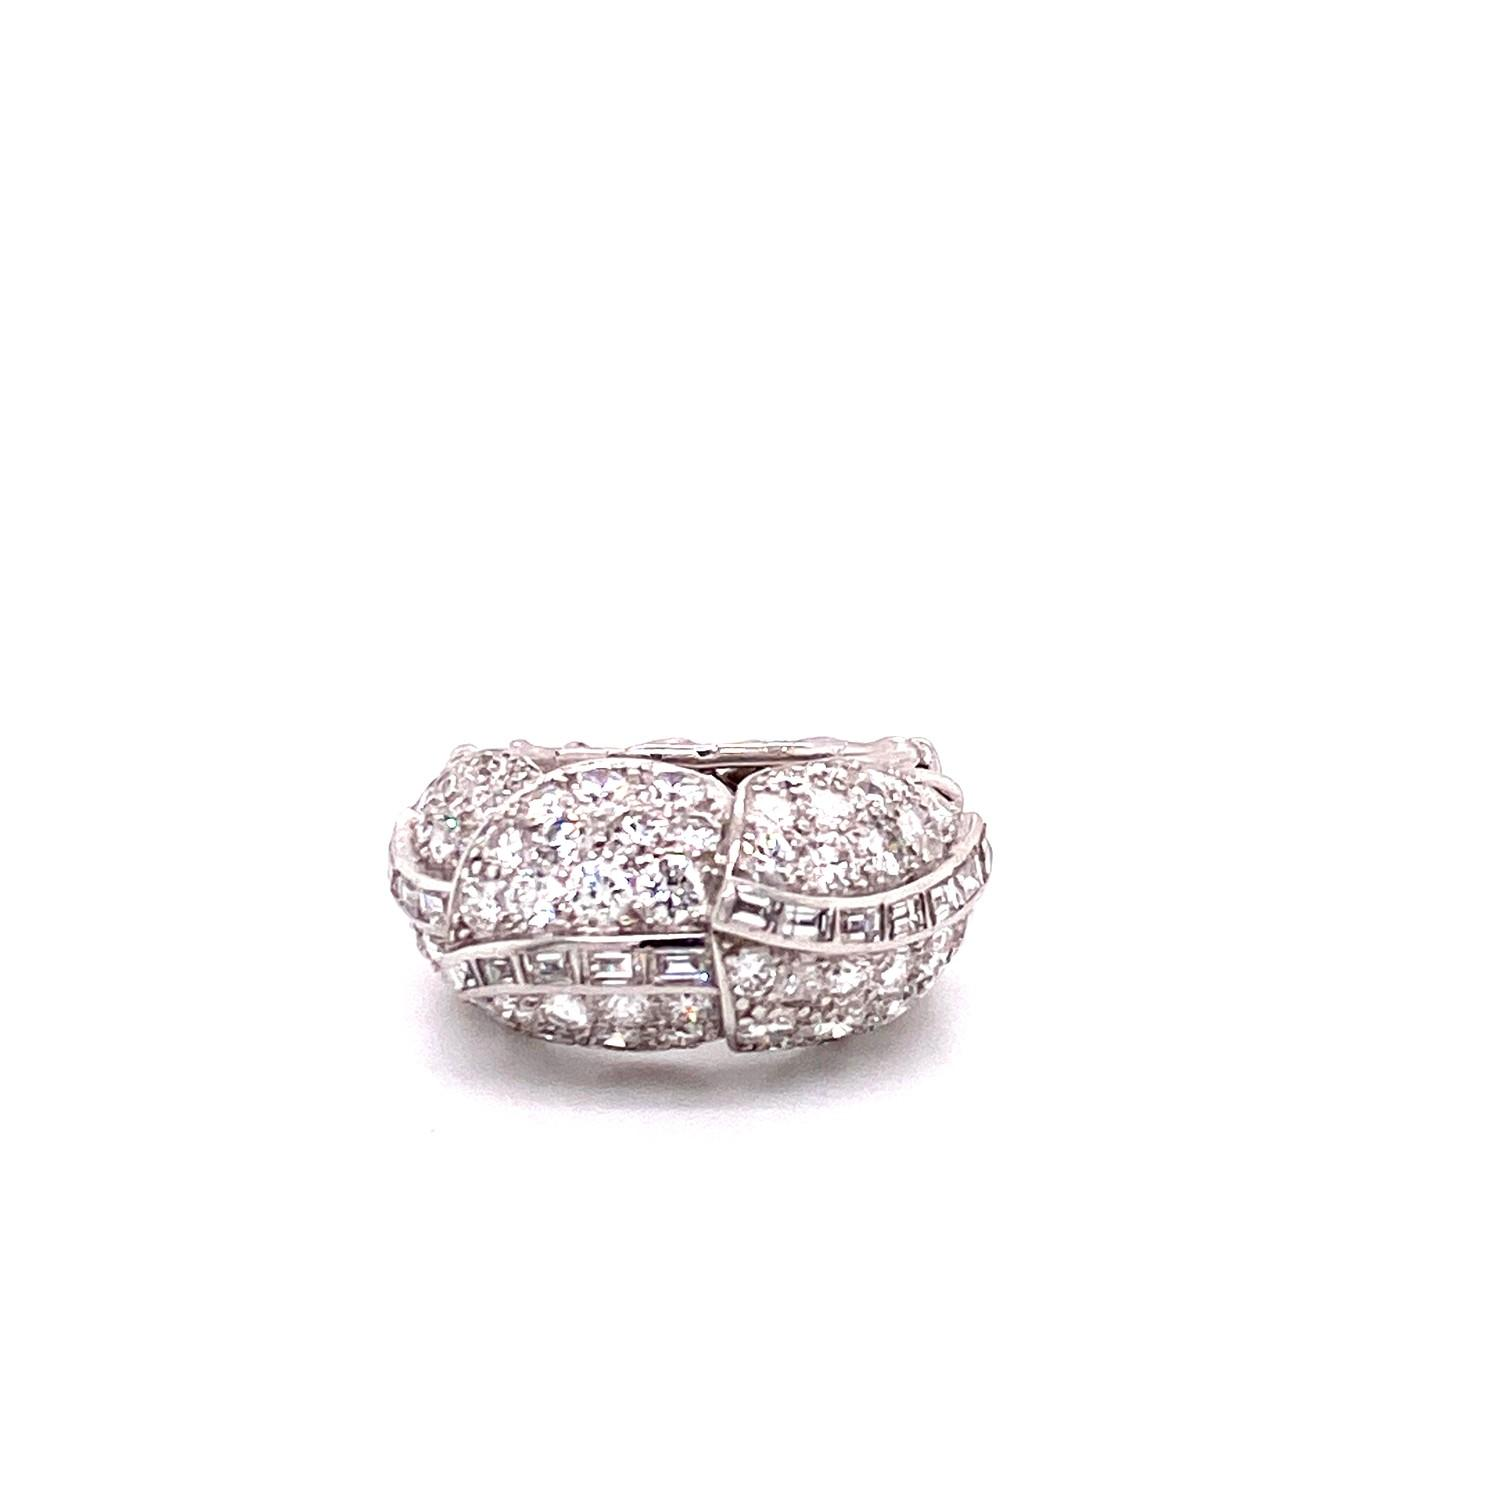 A 1950's Cartier Cocktail Ring, Cartier baguette and brilliant cut pave set dome top bombe ring - Image 4 of 9